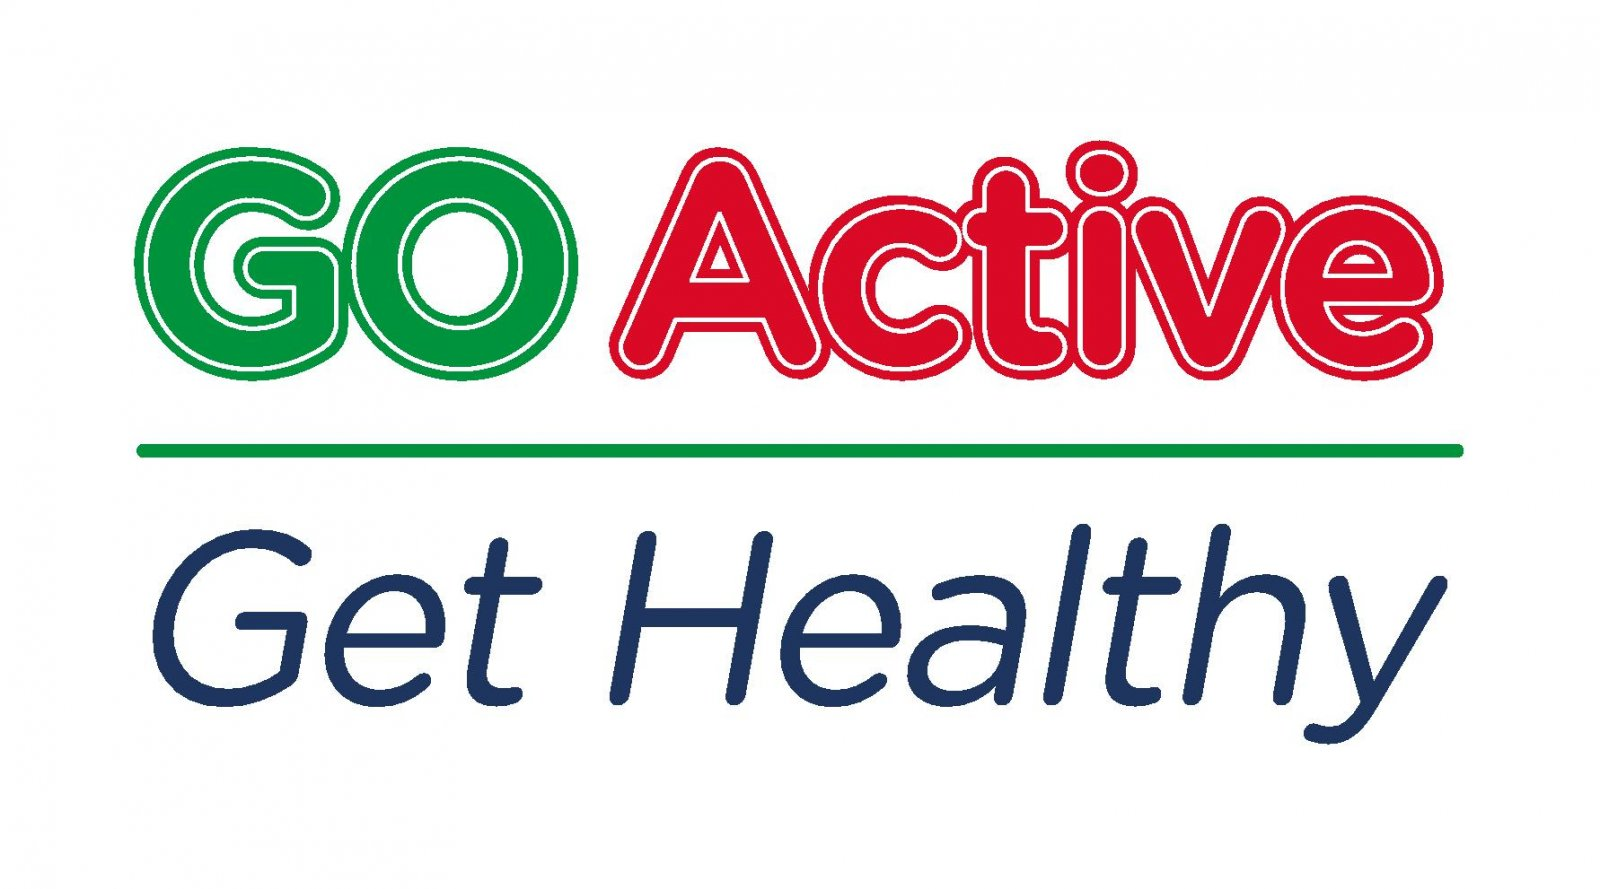 Go Active Get Healthy, Diabetes Programme logo